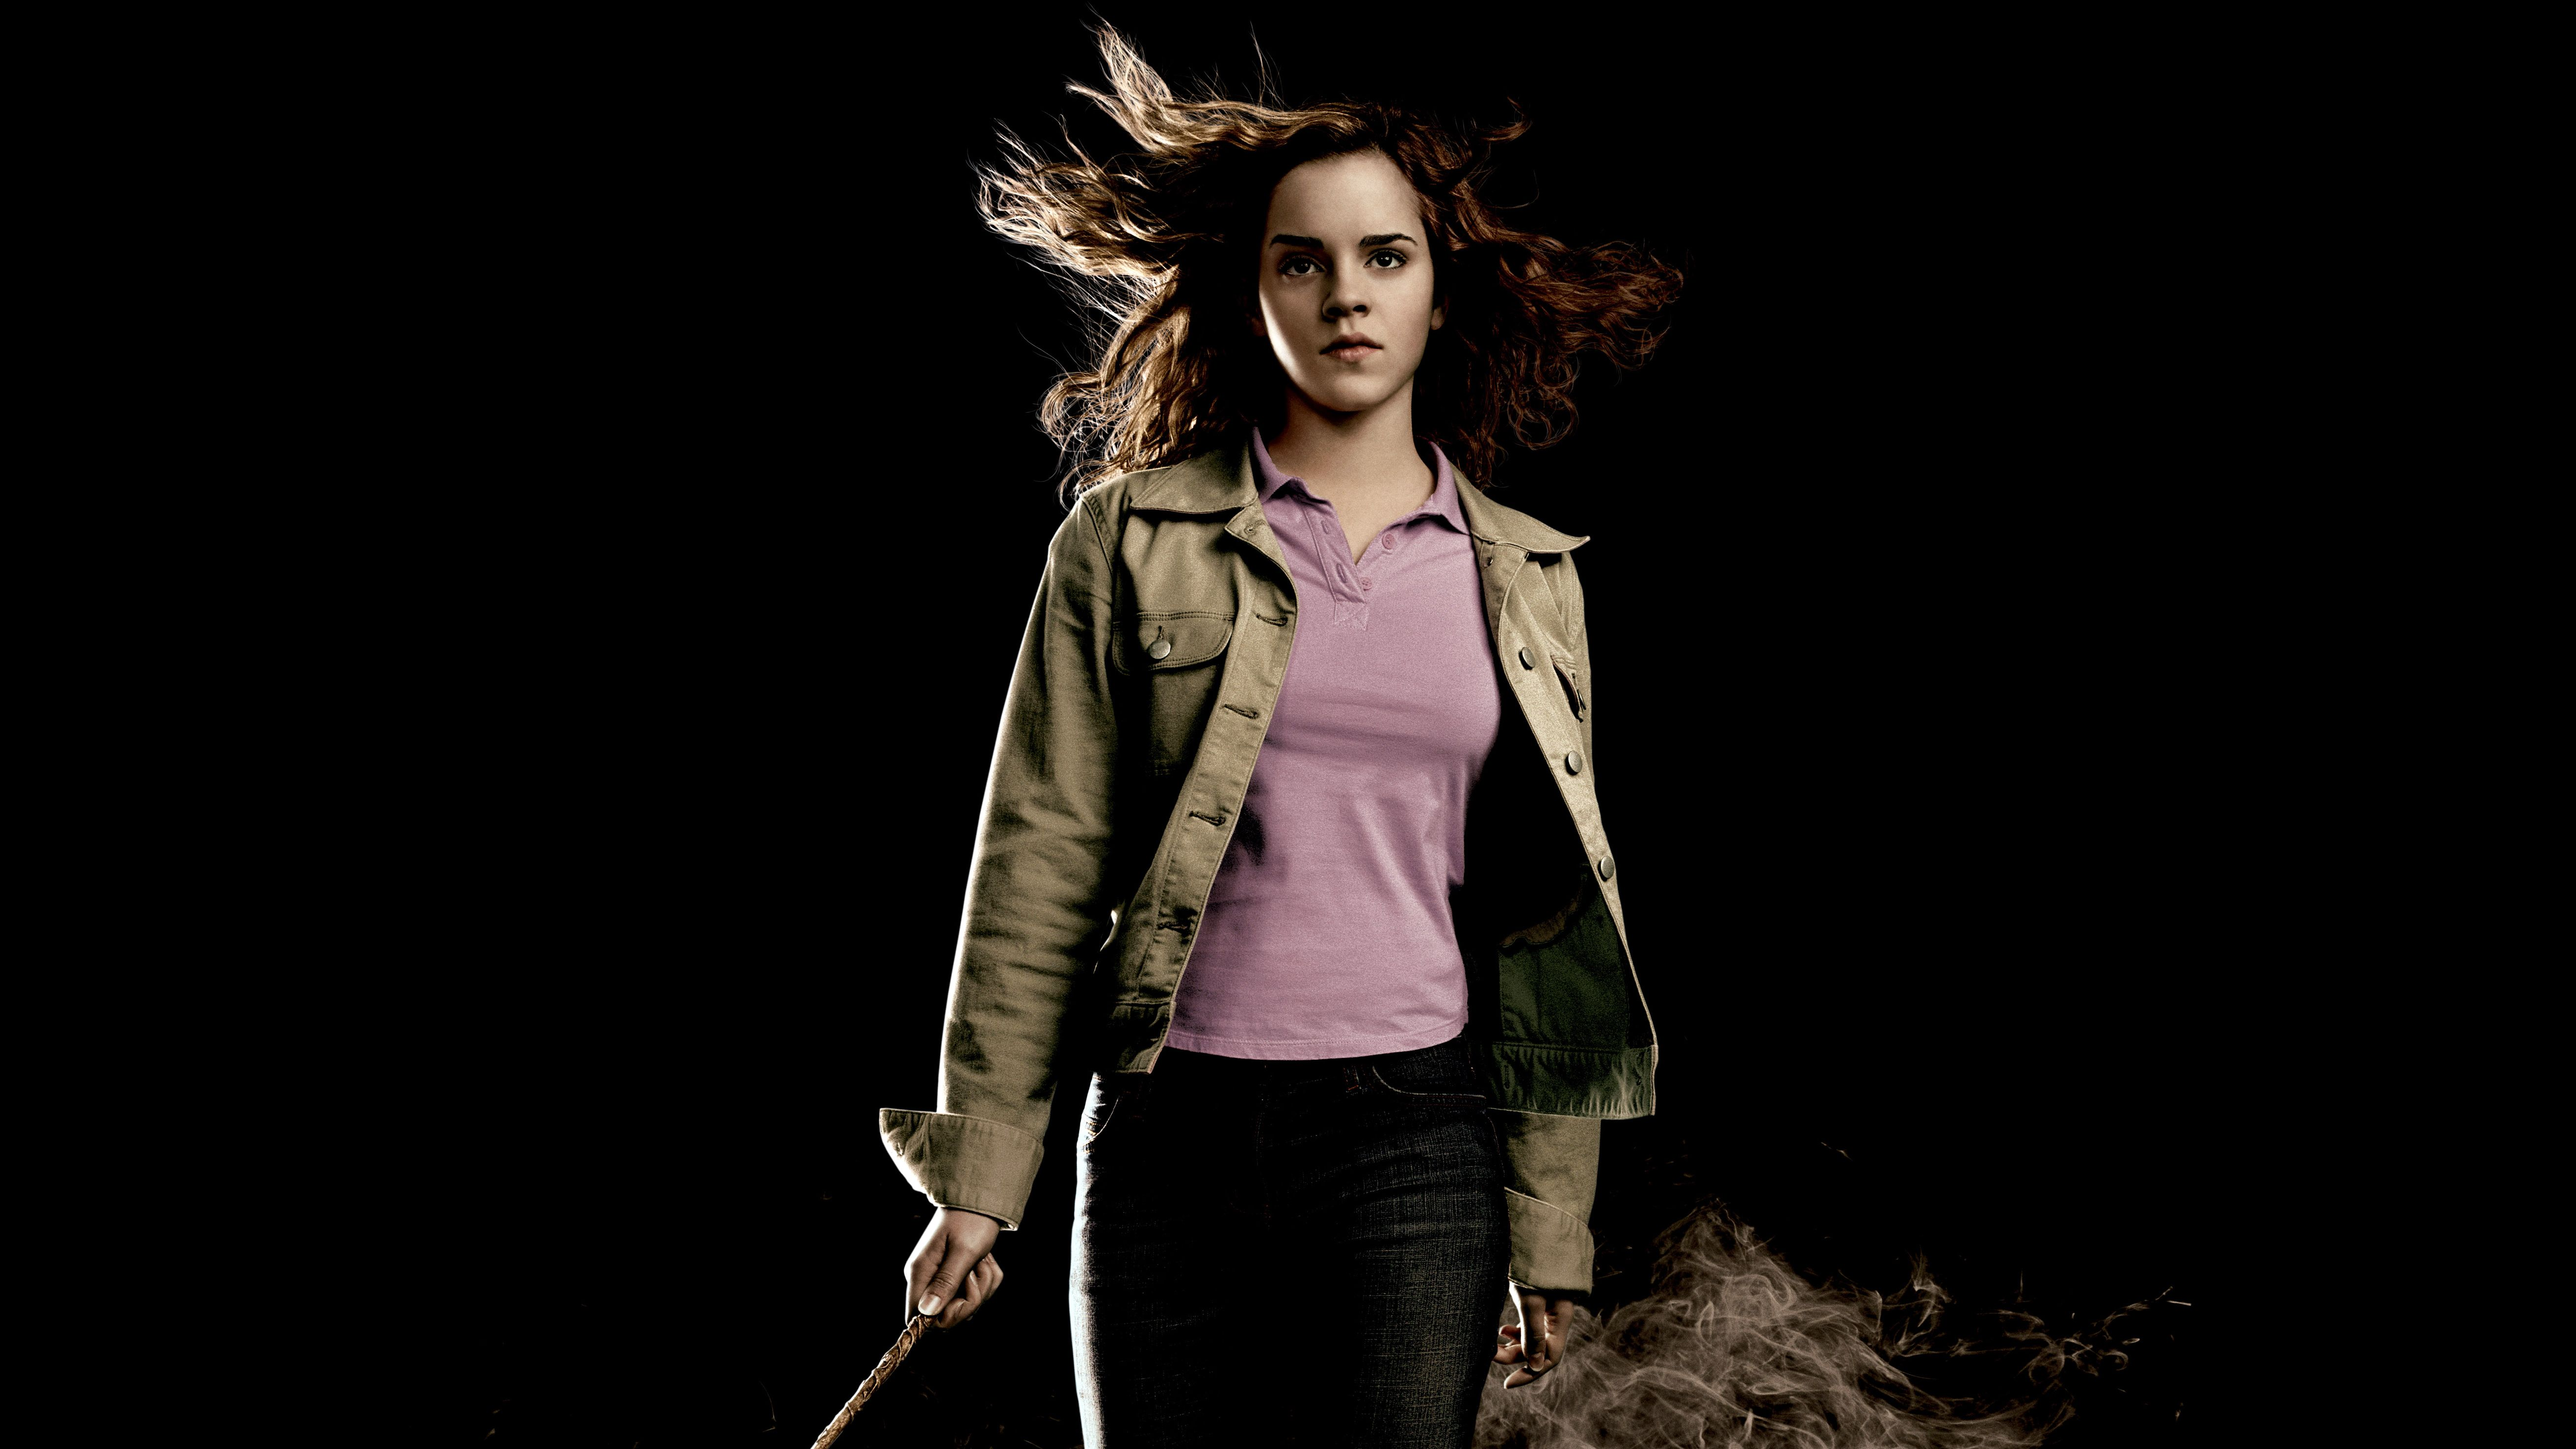 Wallpapers Emma Watson, Hermione Granger, Harry Potter and the Goblet